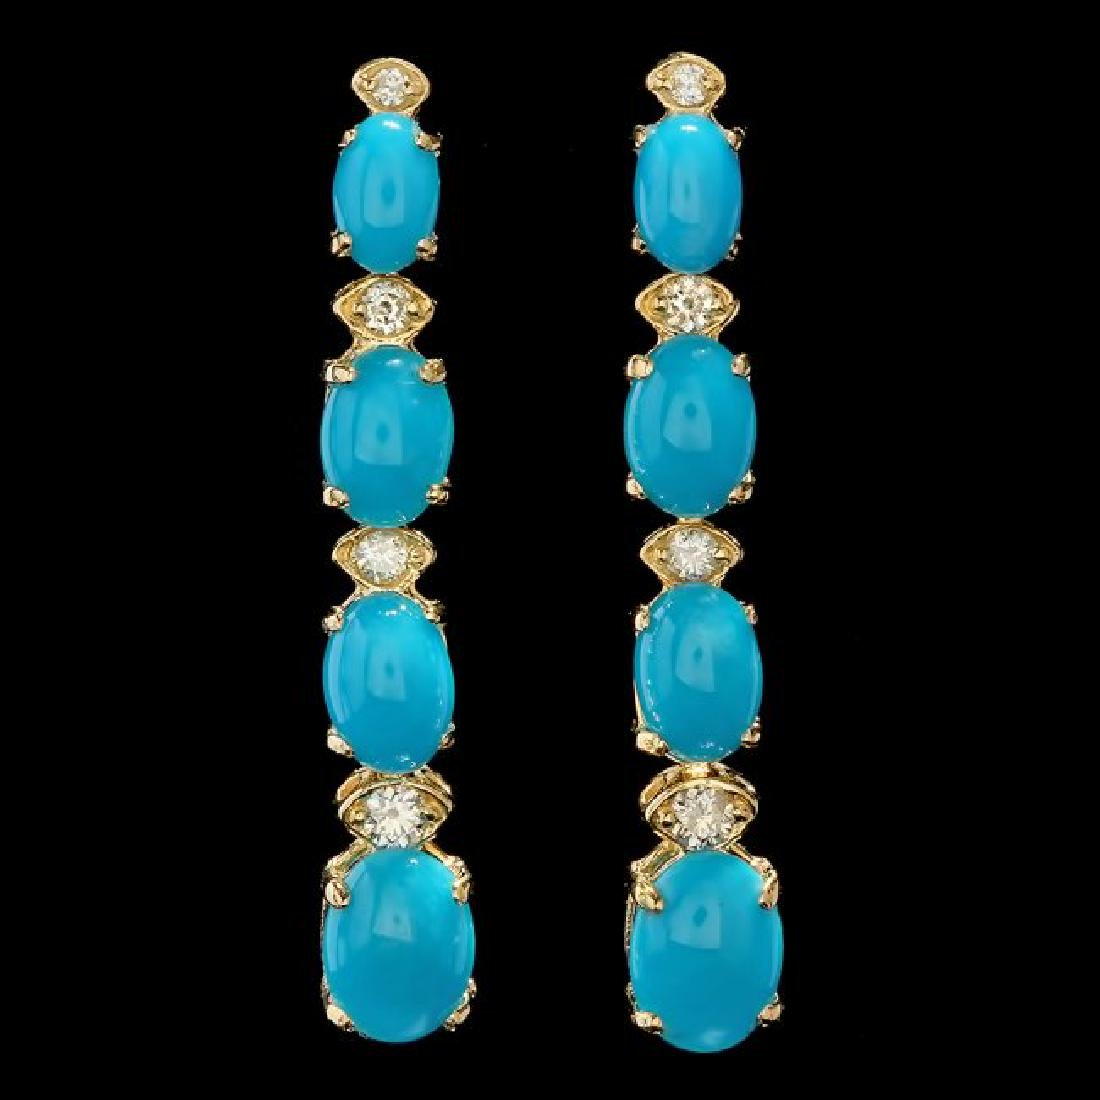 14k Gold 5.50ct Turquoise 0.35ct Diamond Earrings